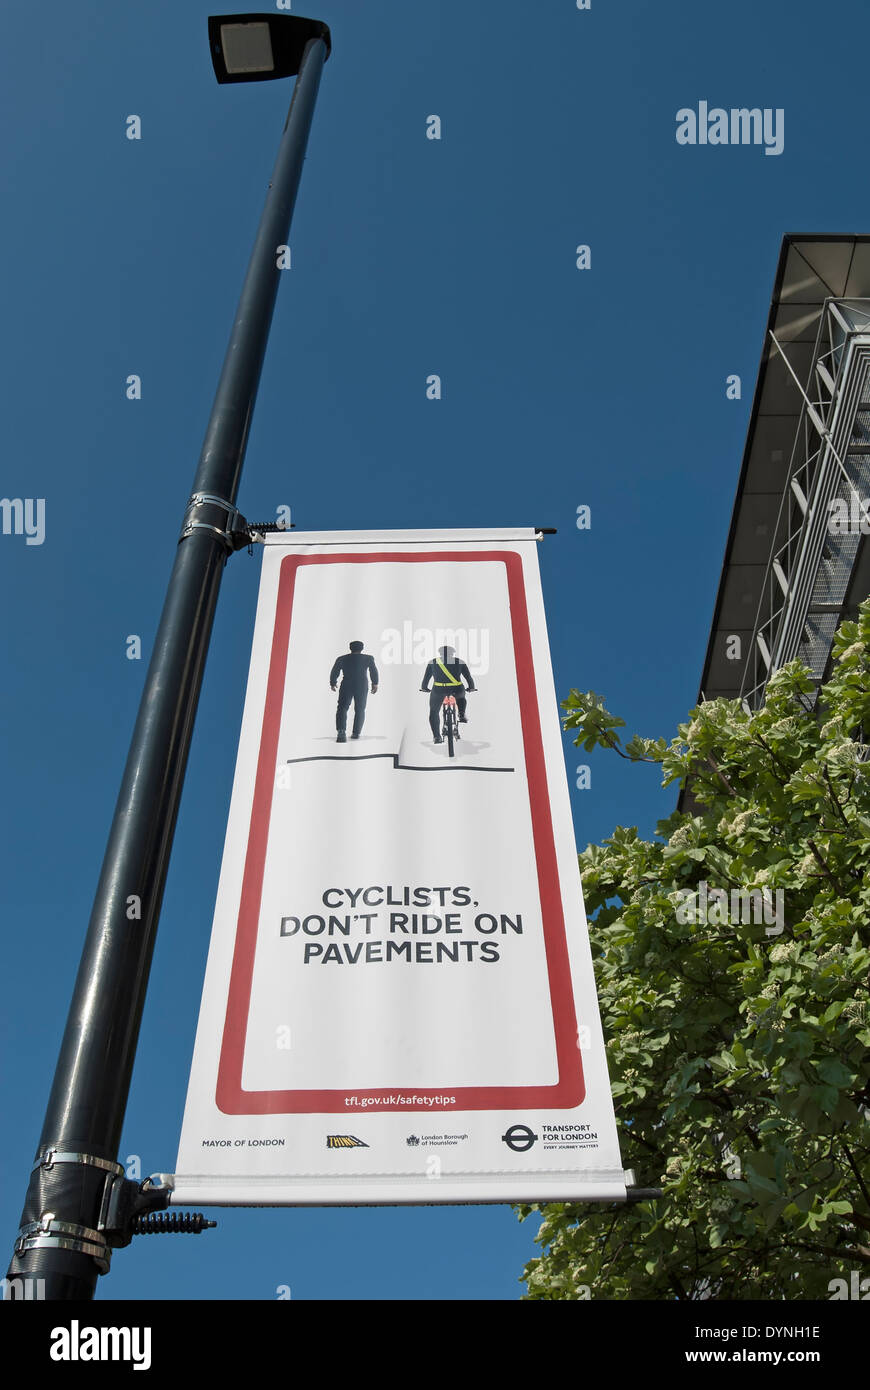 cyclists don't ride on pavements poster, hounslow, middlesex, england - Stock Image